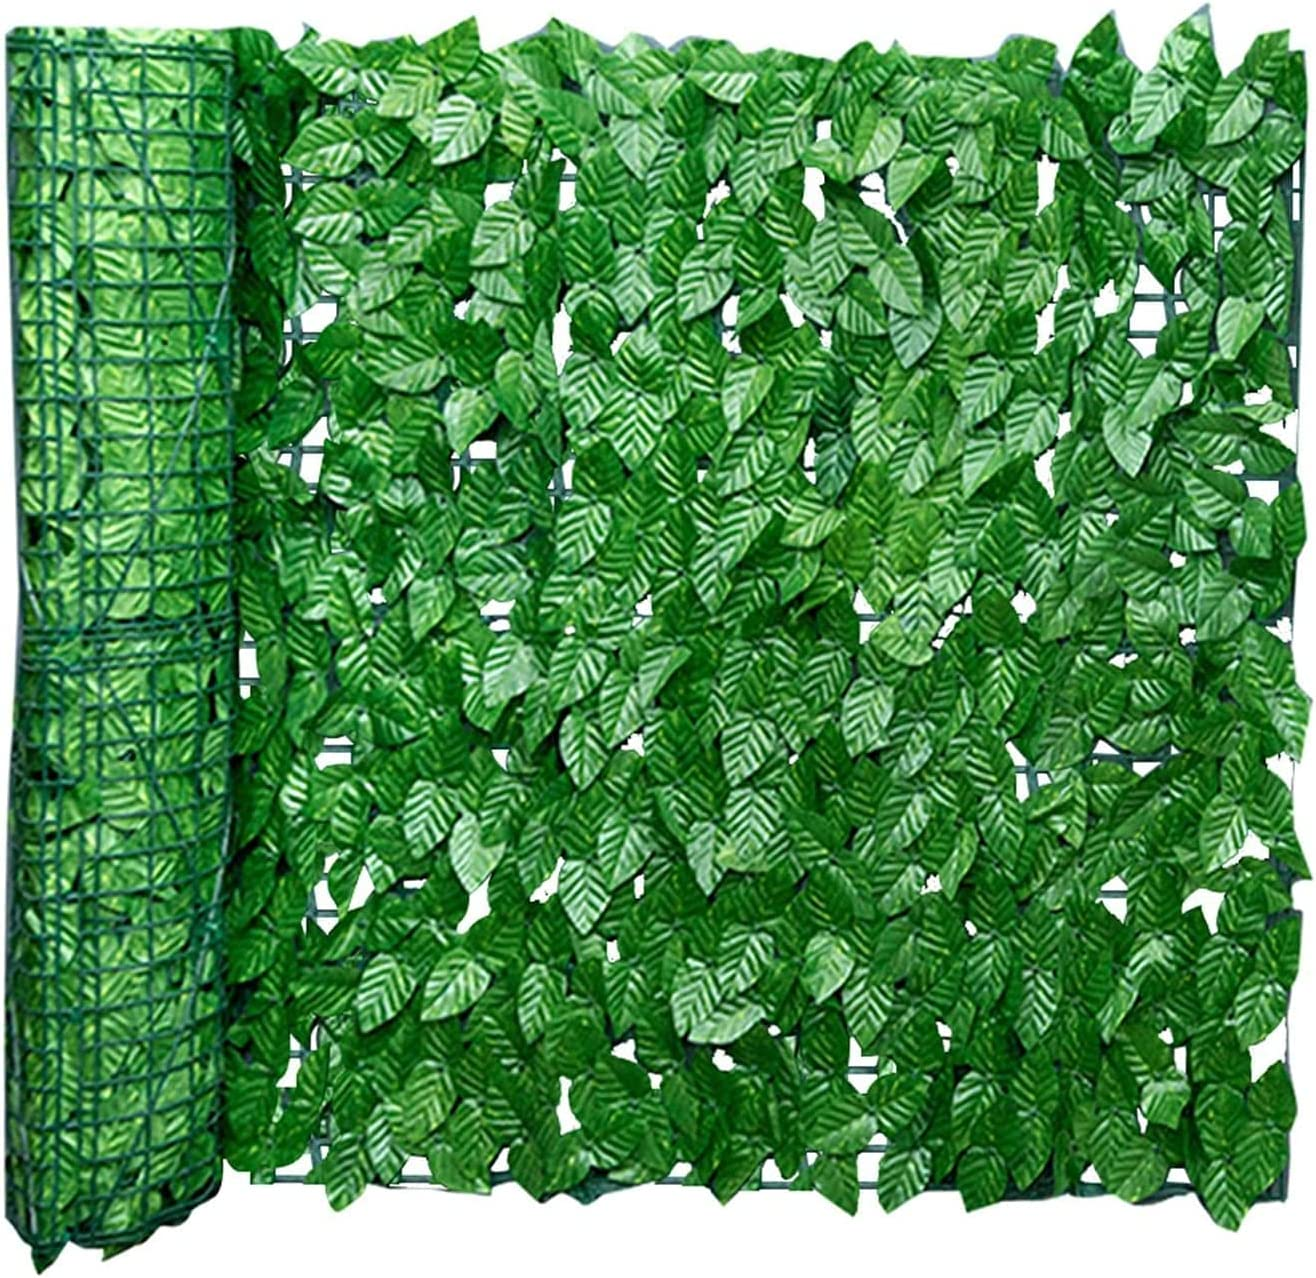 Privacy Fence Screen Ivy Wall Balcony Store Landscaping Decor Sale Special Price